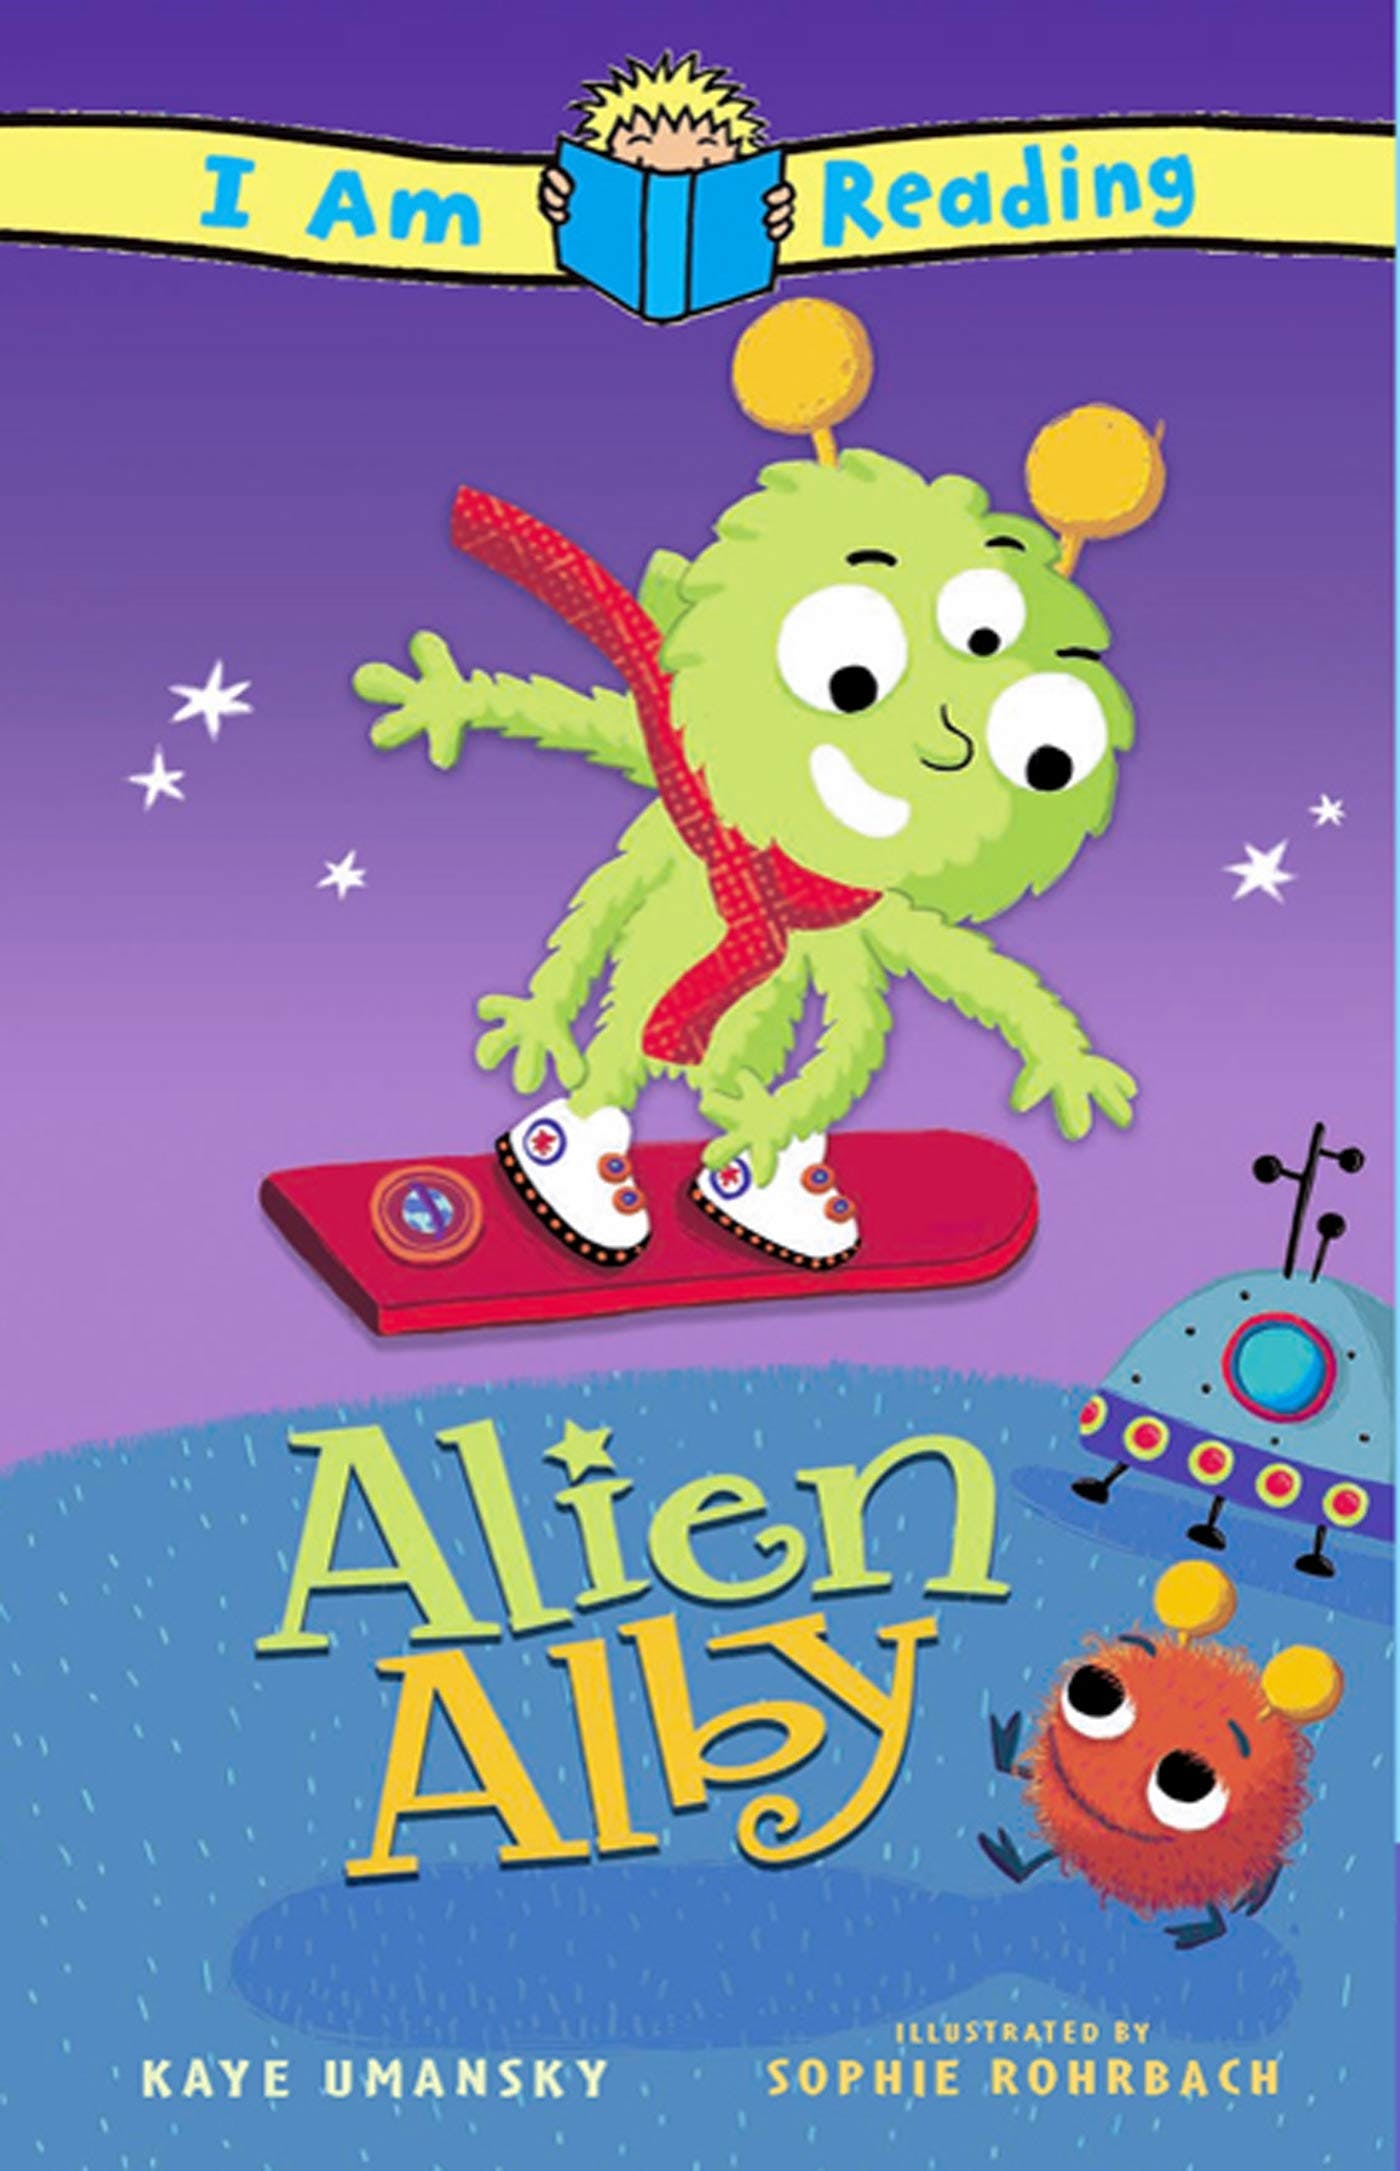 Image of I Am Reading: Alien Alby